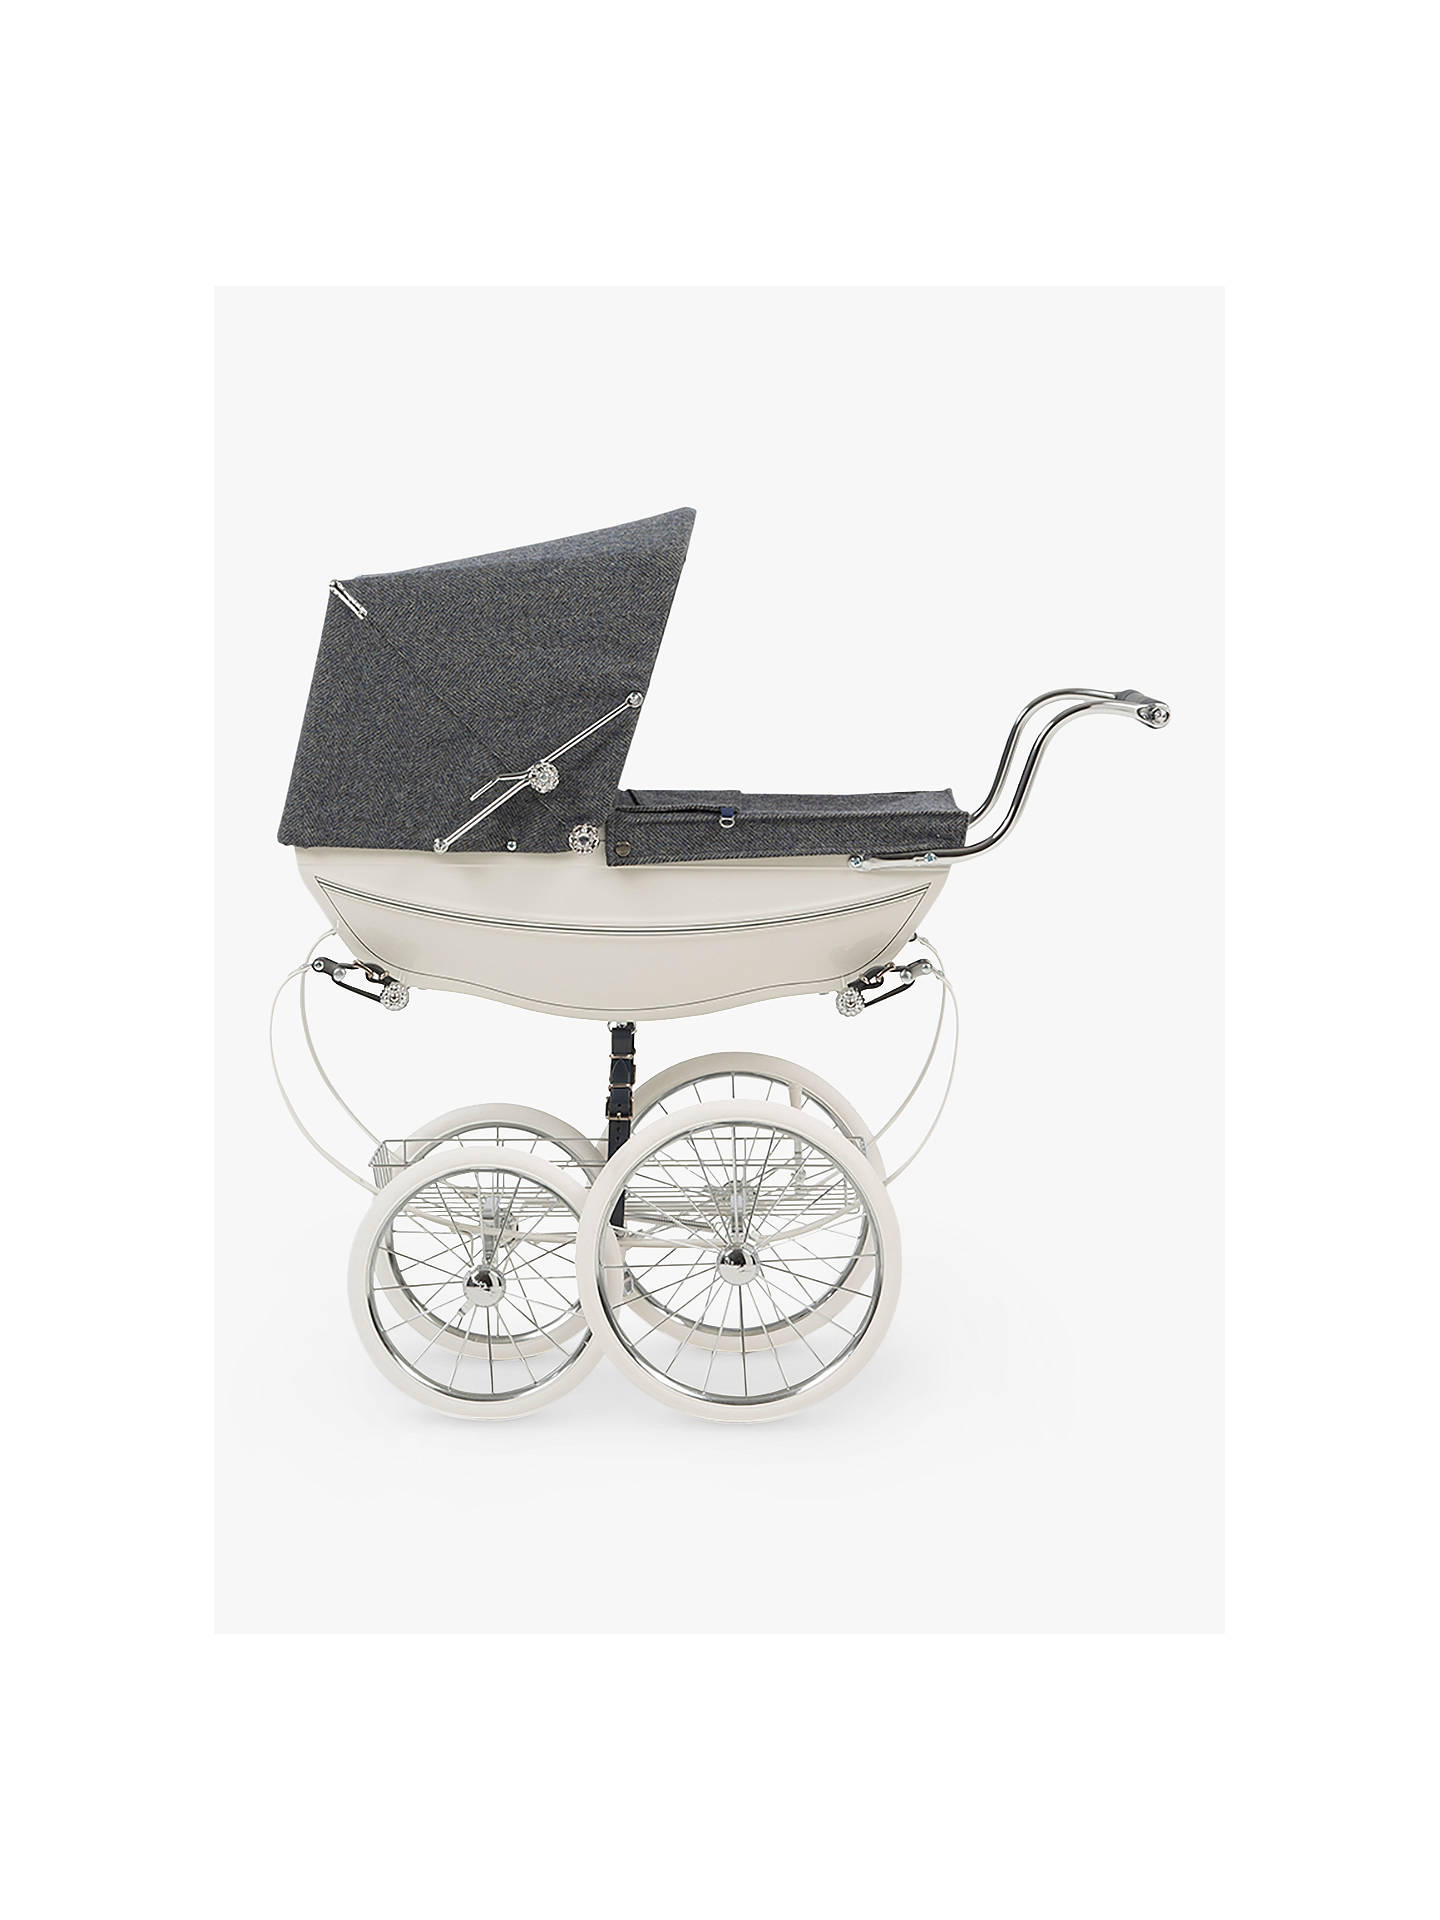 BuySilver Cross 140th Anniversary Balmor Doll's Pram Online at johnlewis.com